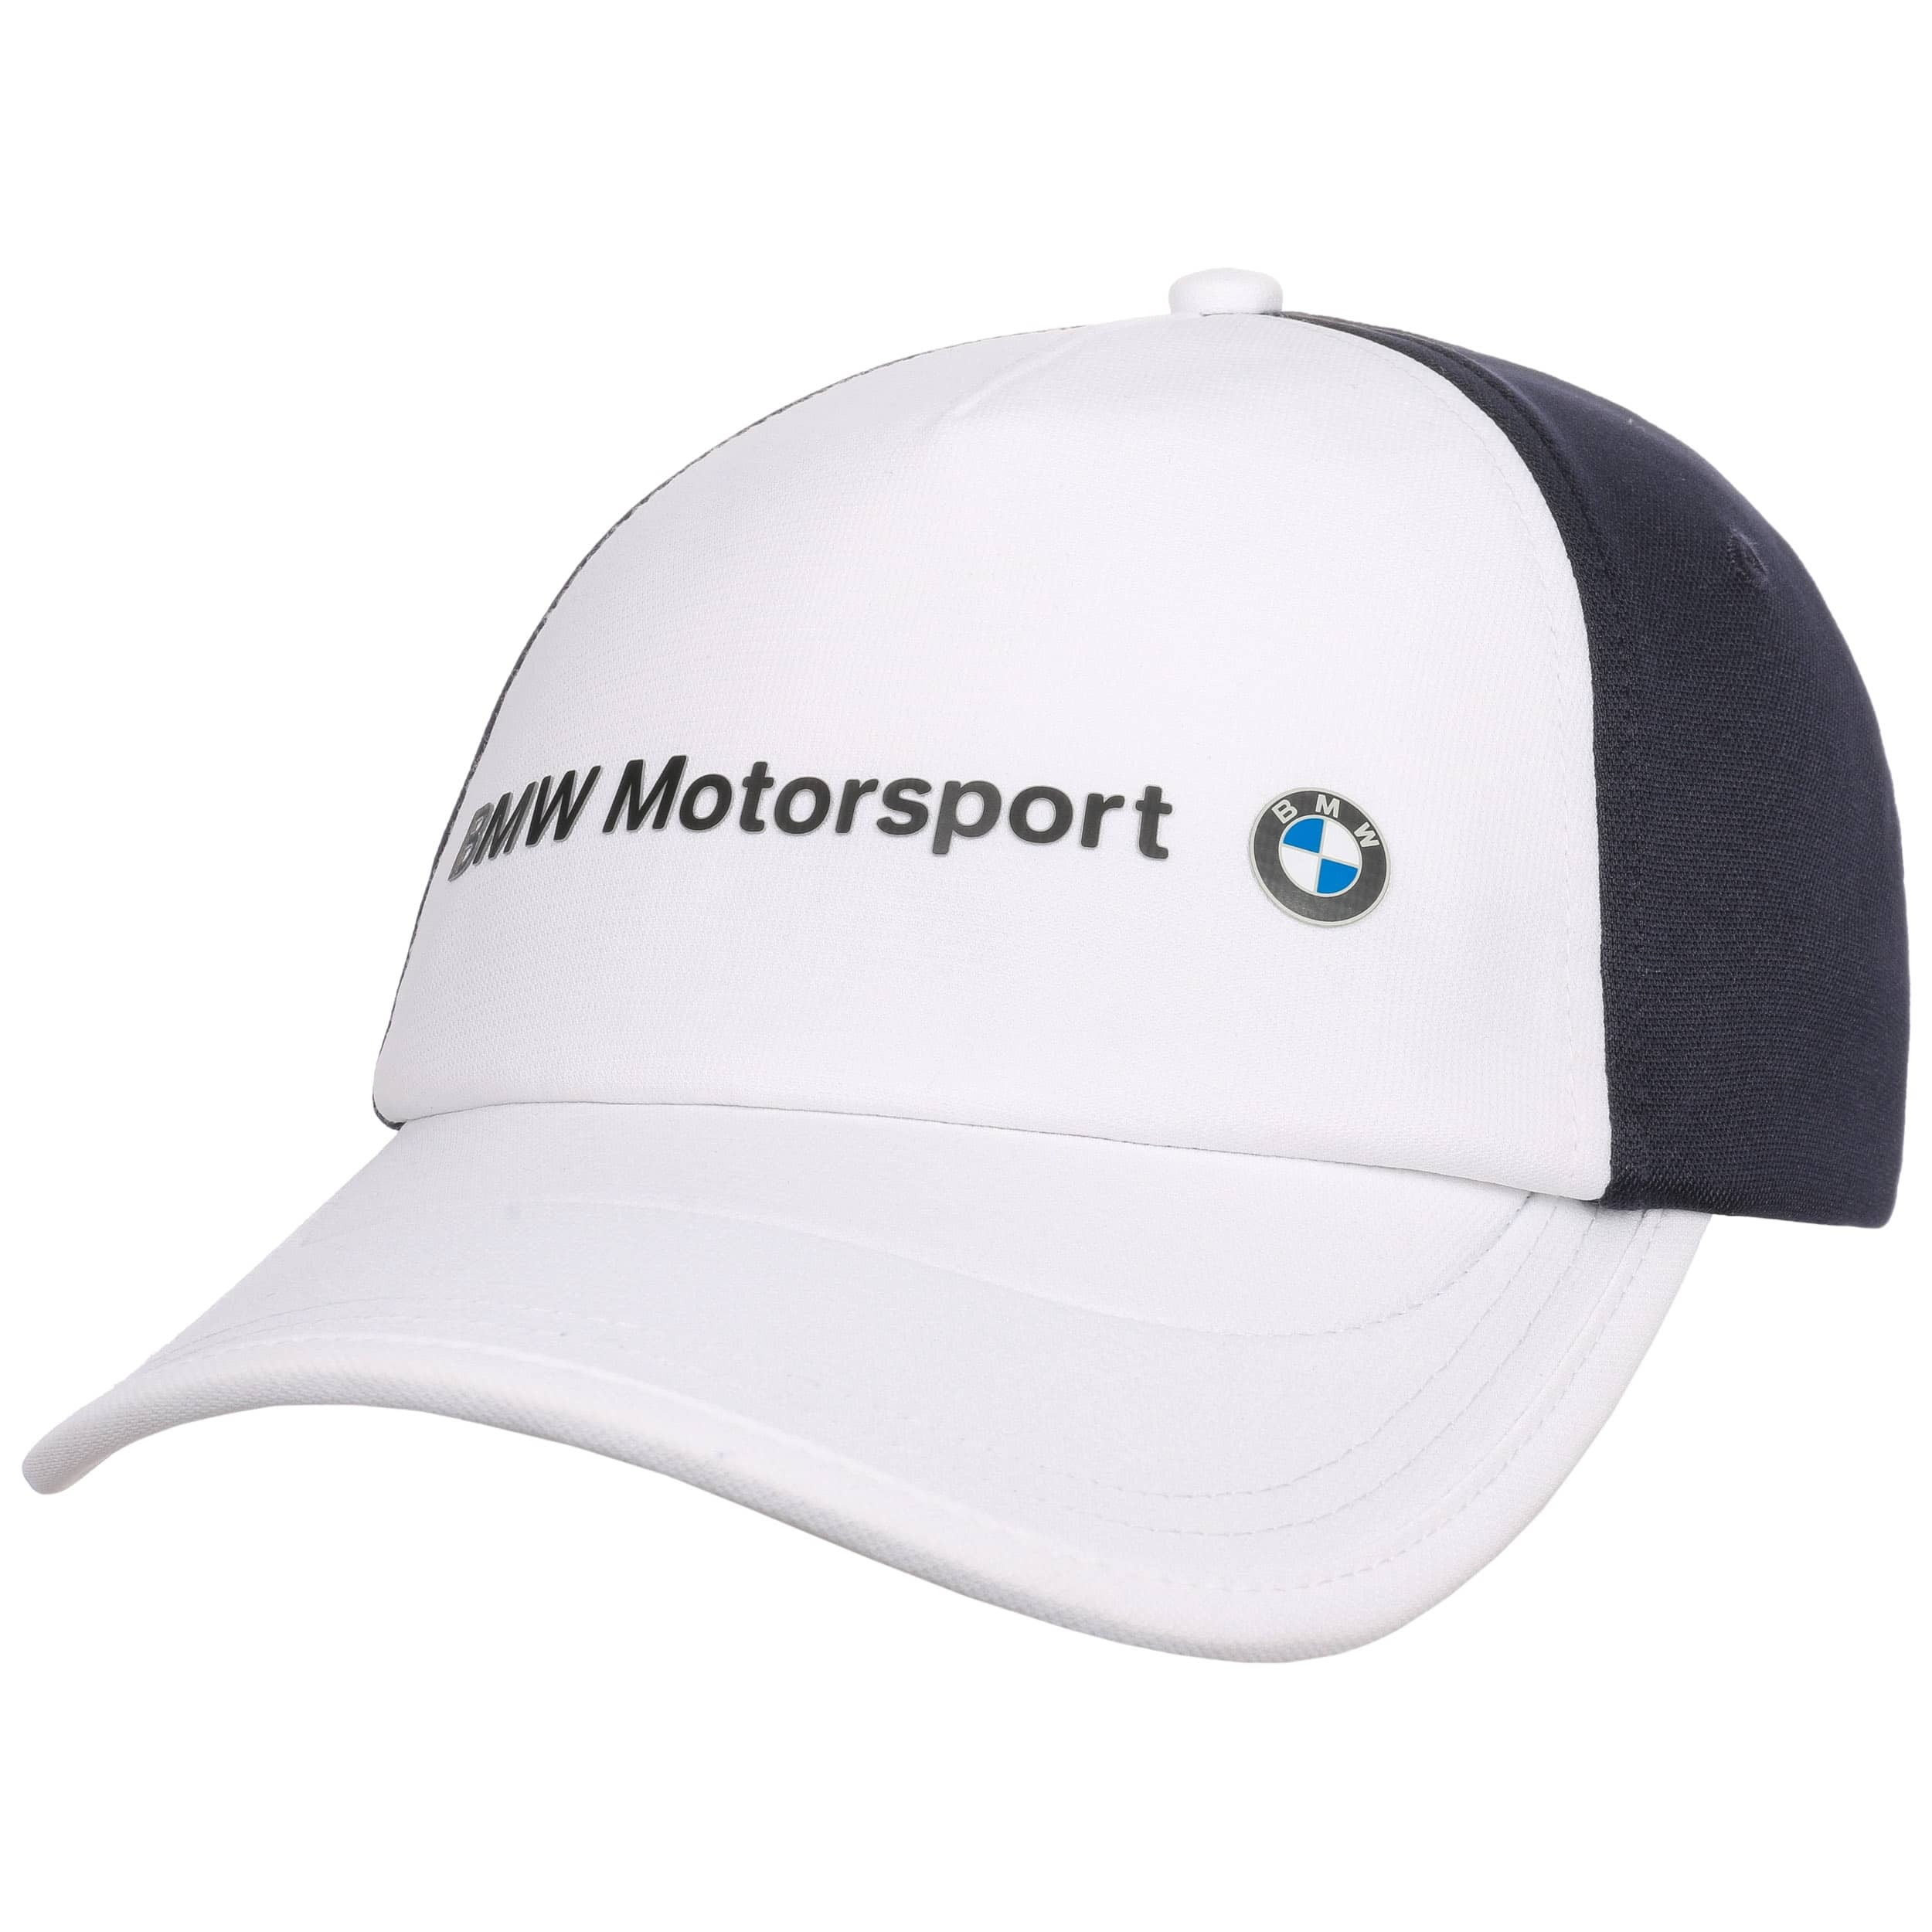 product urban x for men blue faif bmw in accessories hat lyst gallery outfitters cap renewal